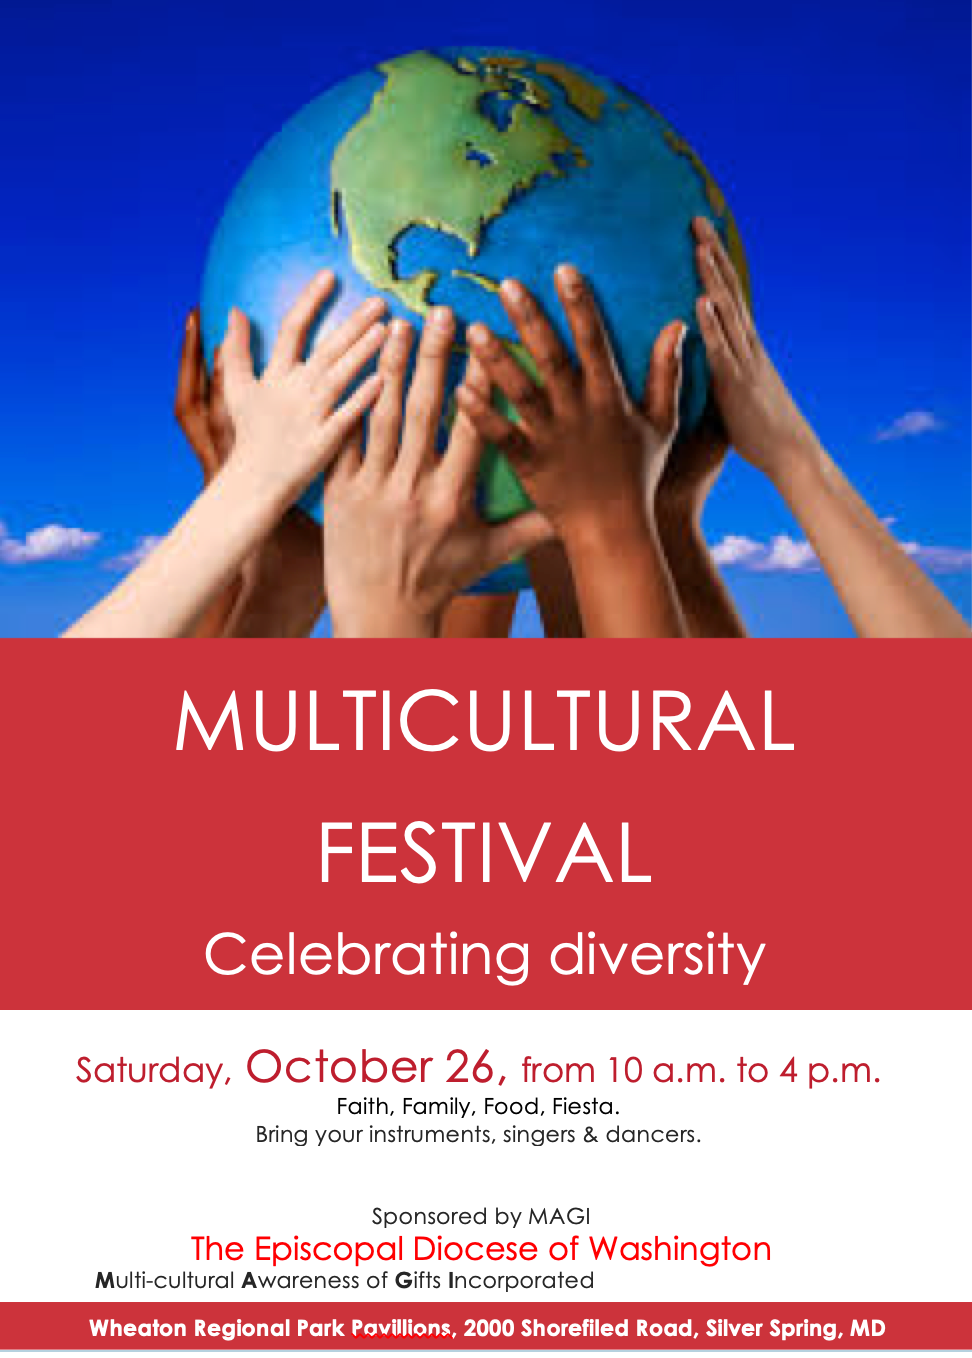 Multicultural Festival Celebrating Diversity | St. Stephen and the Incarnation Episcopal Church